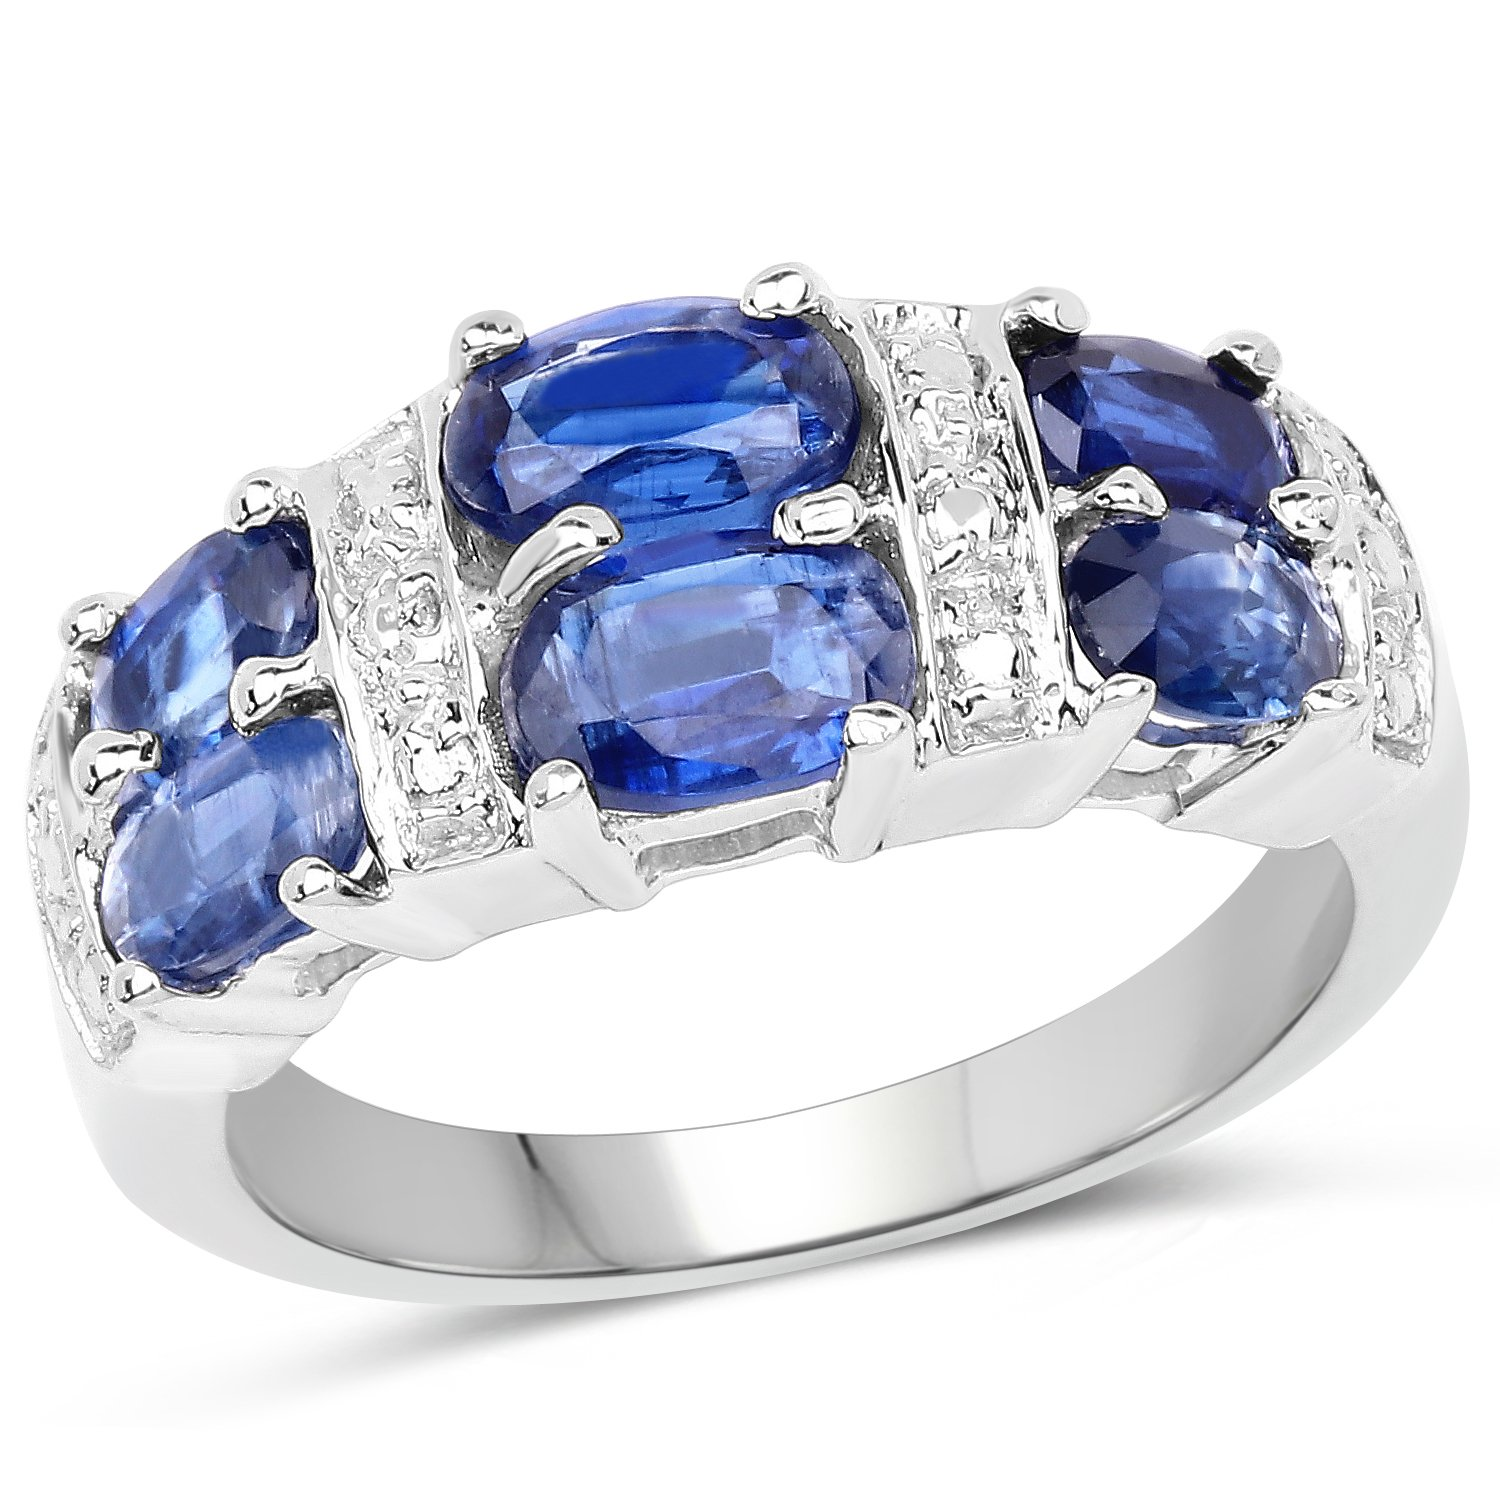 2.44 ct. Genuine Kyanite Sterling Silver Ring